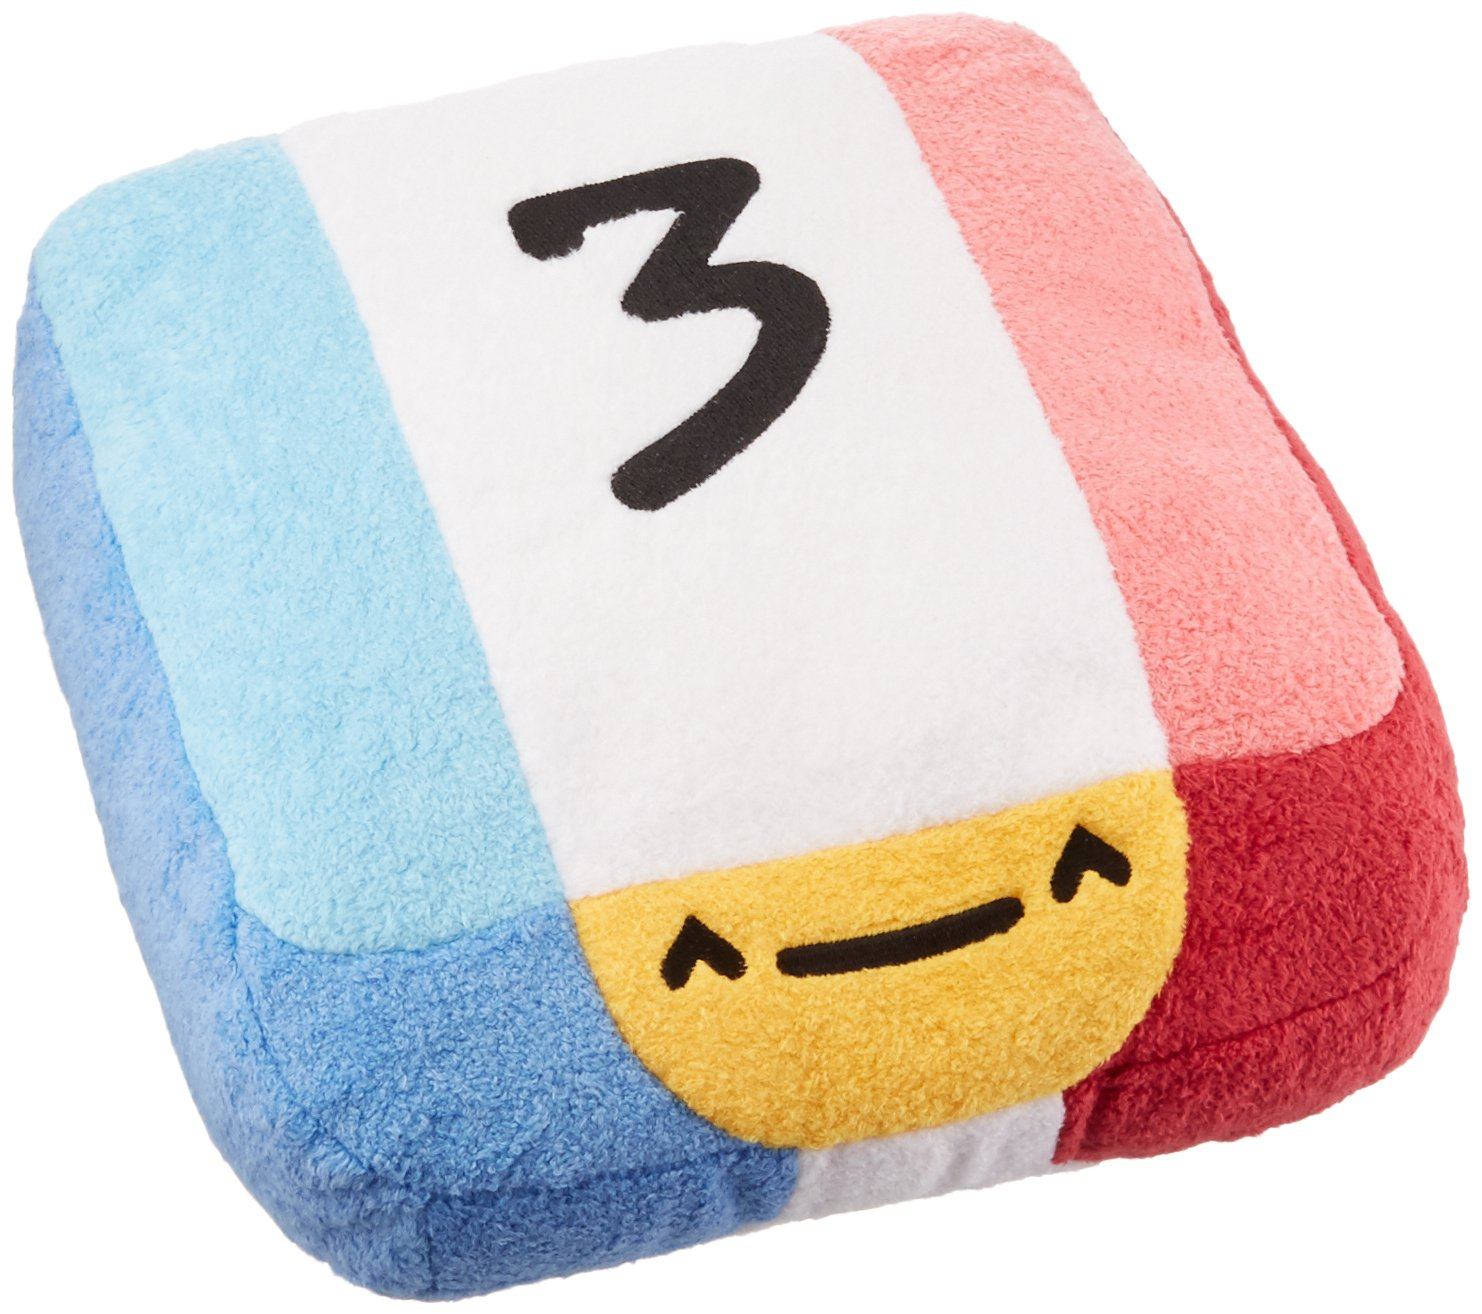 Huggable Plush Pillow Shanghai Prosper SZH-21254 Threes